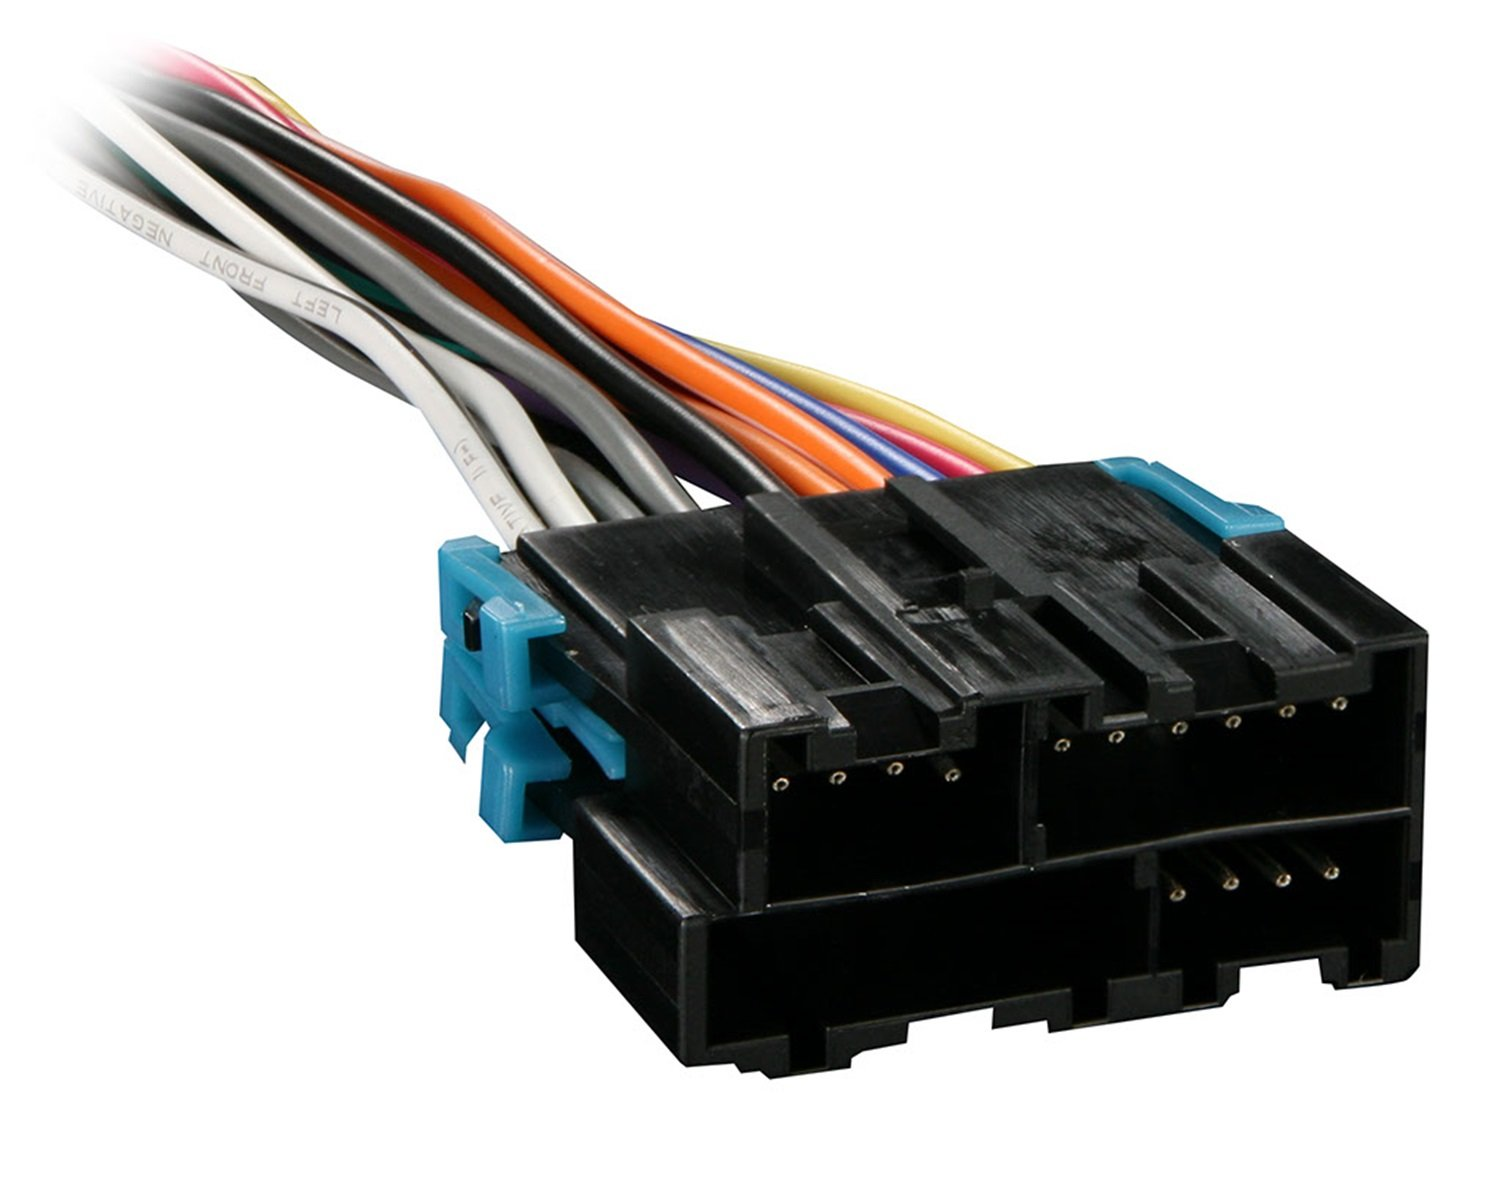 61 CwjZt1hL._SL1500_ radio wiring harnesses amazon com car audio wiring harness at gsmx.co